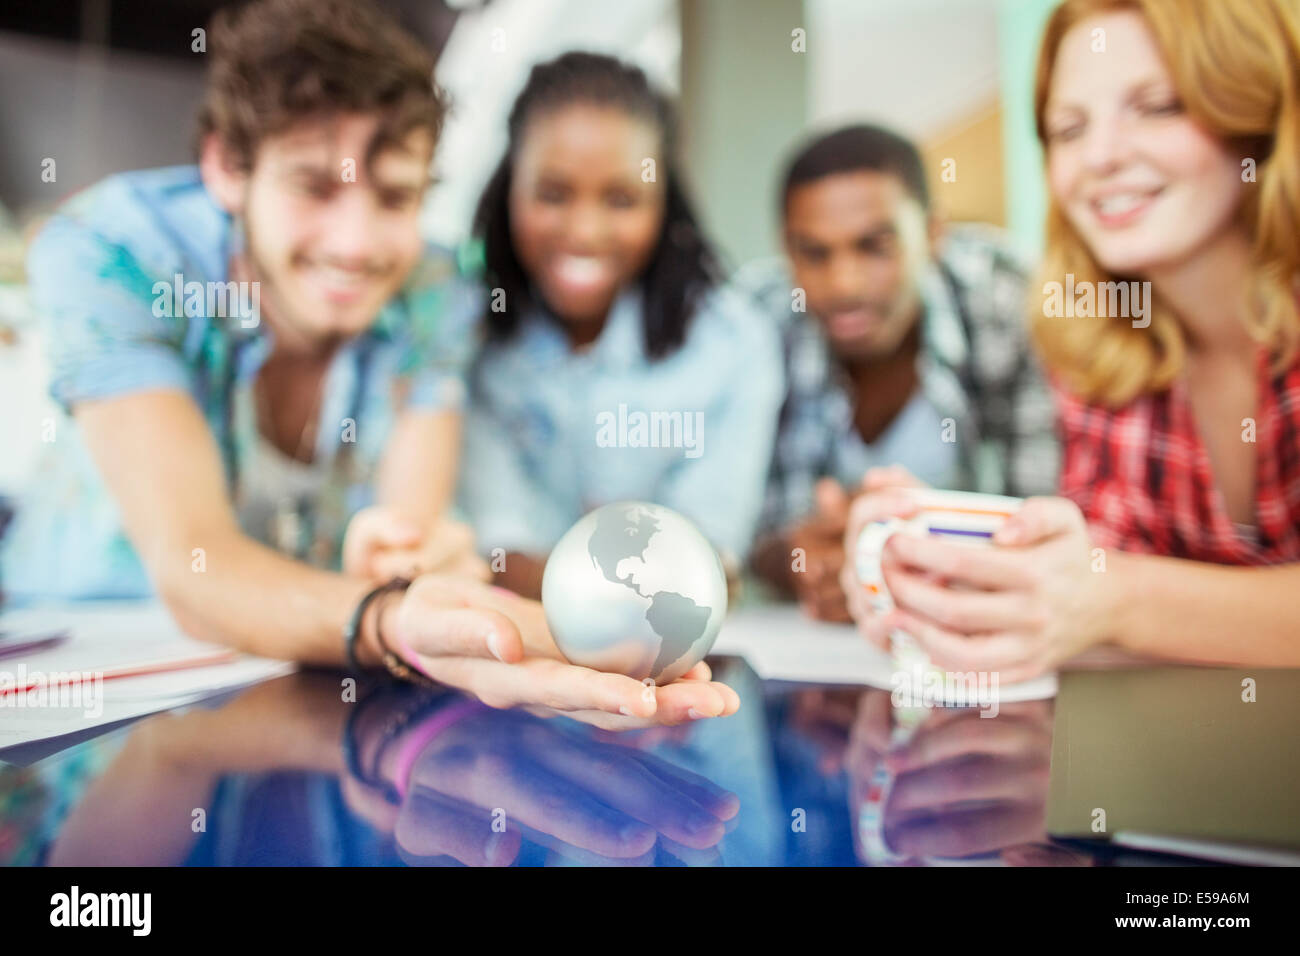 People examining globe in office Stock Photo